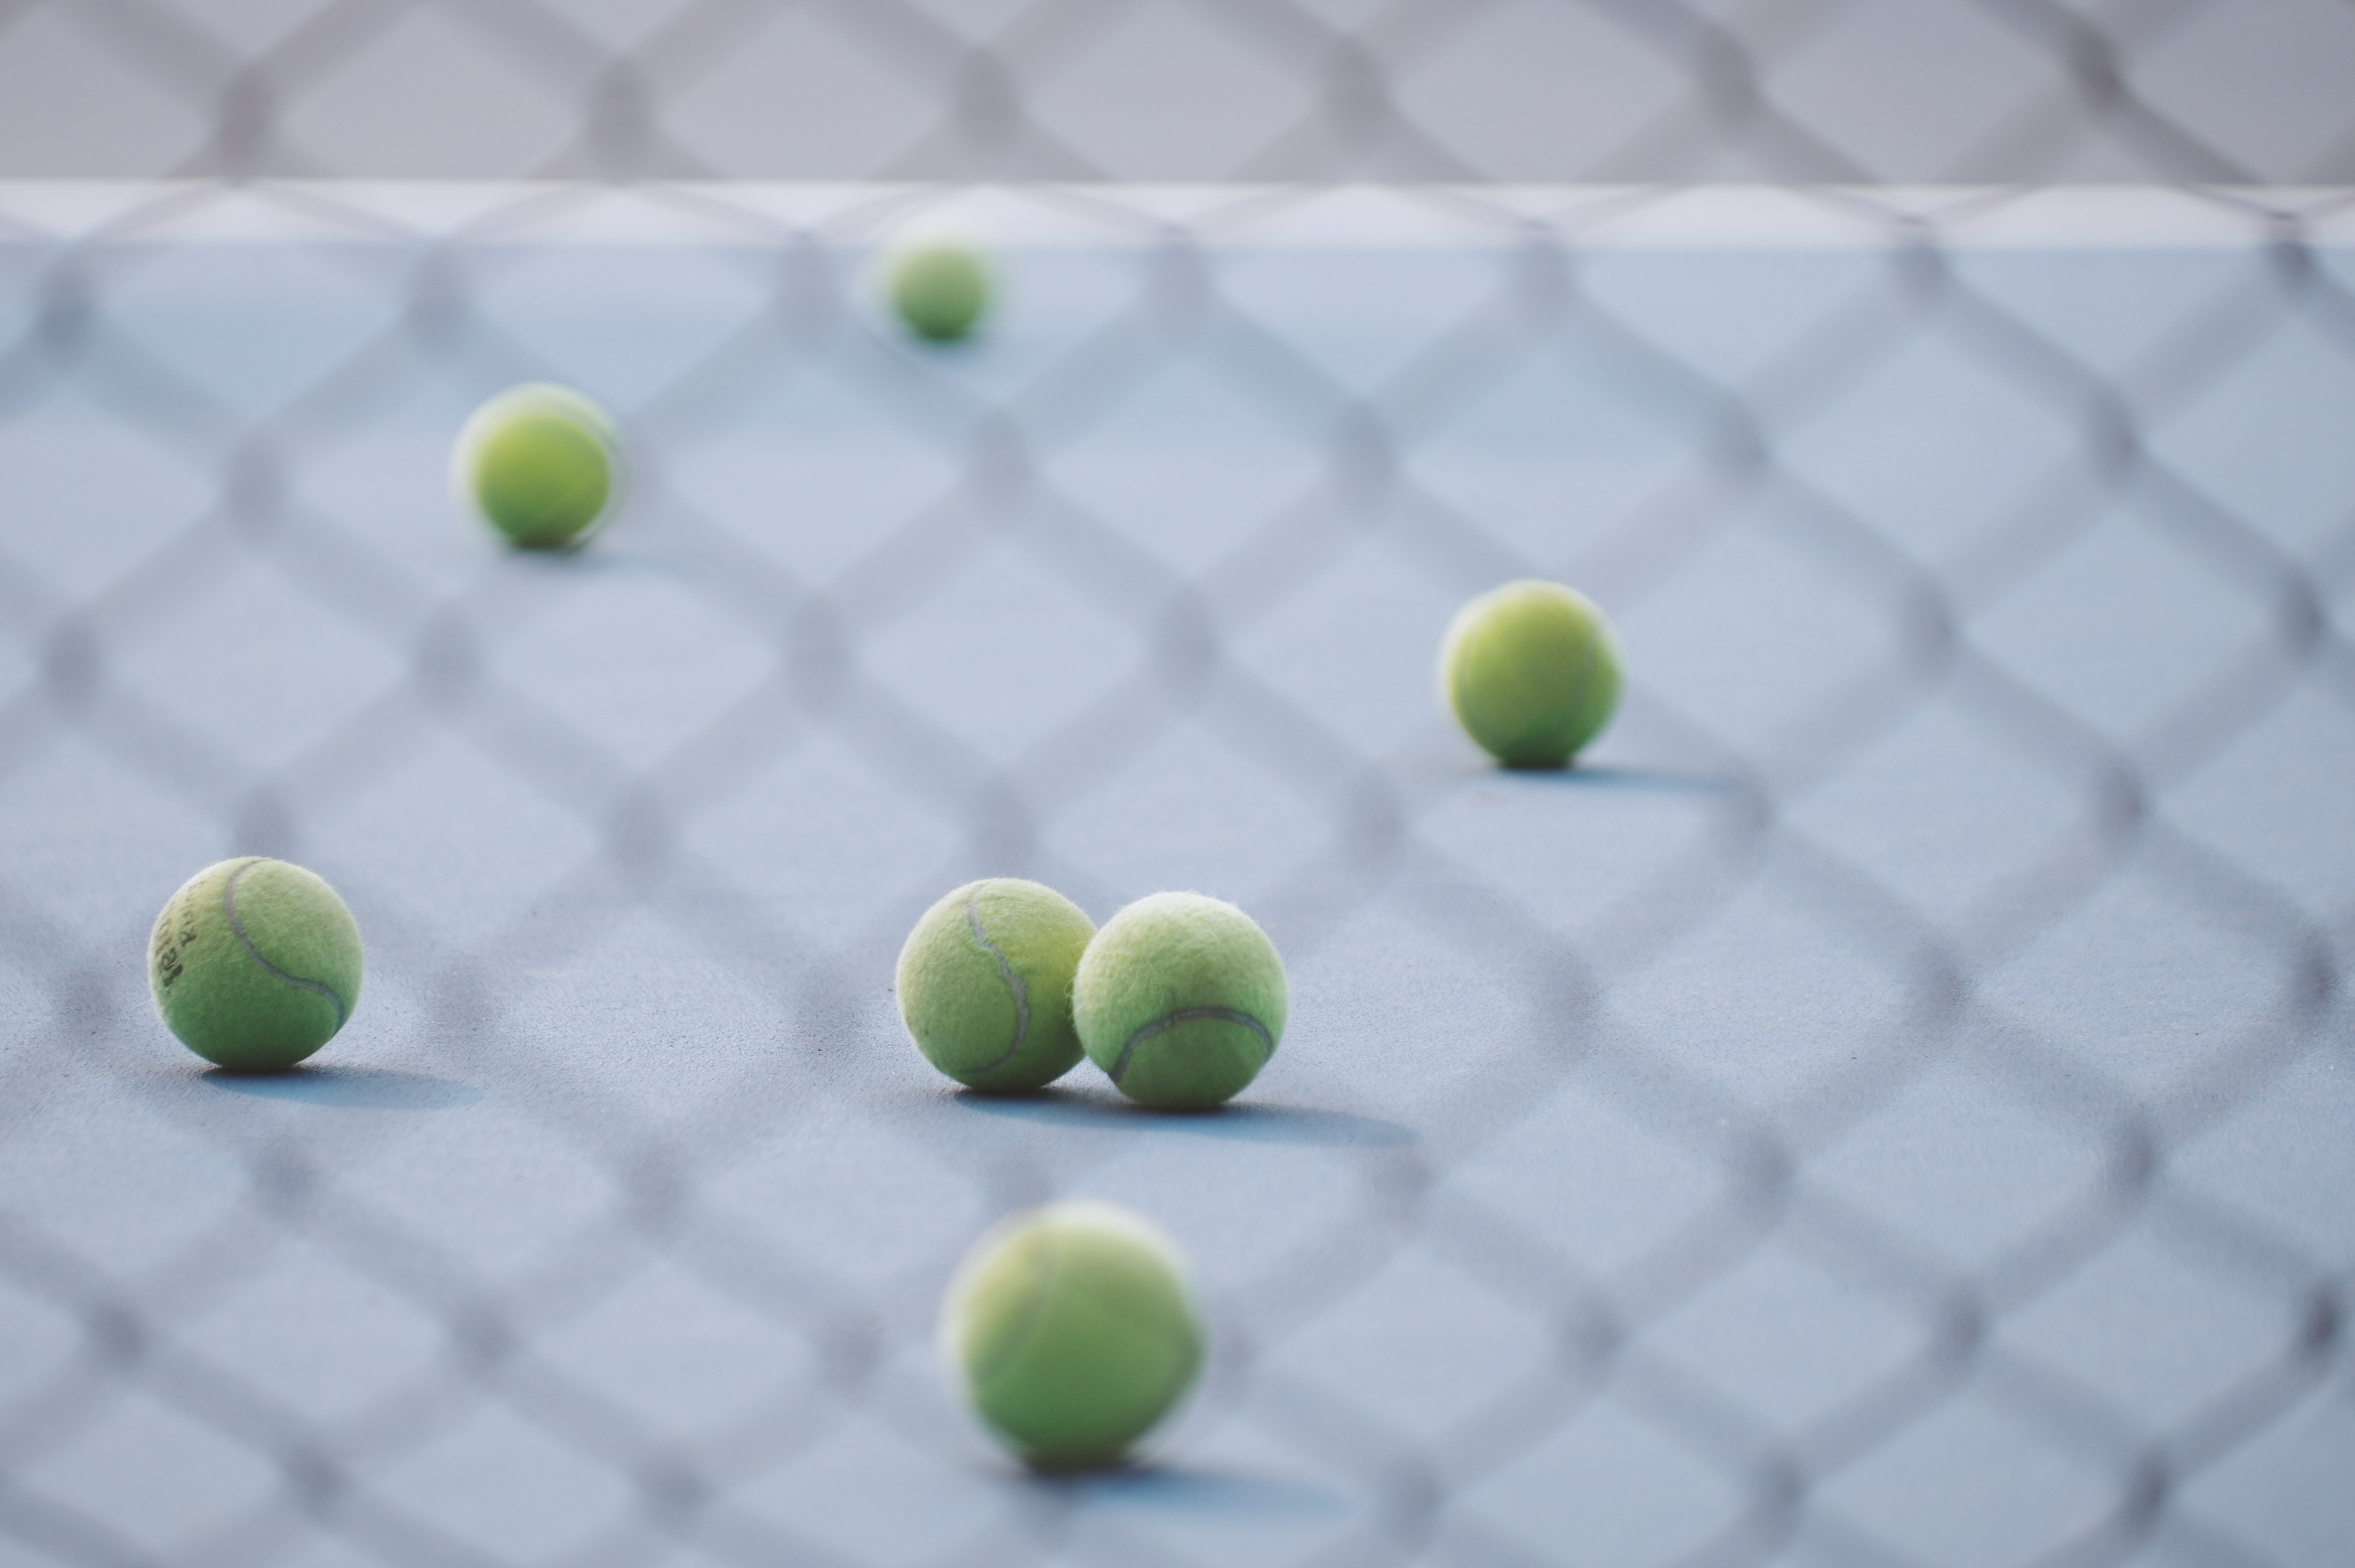 green tennis ball in court